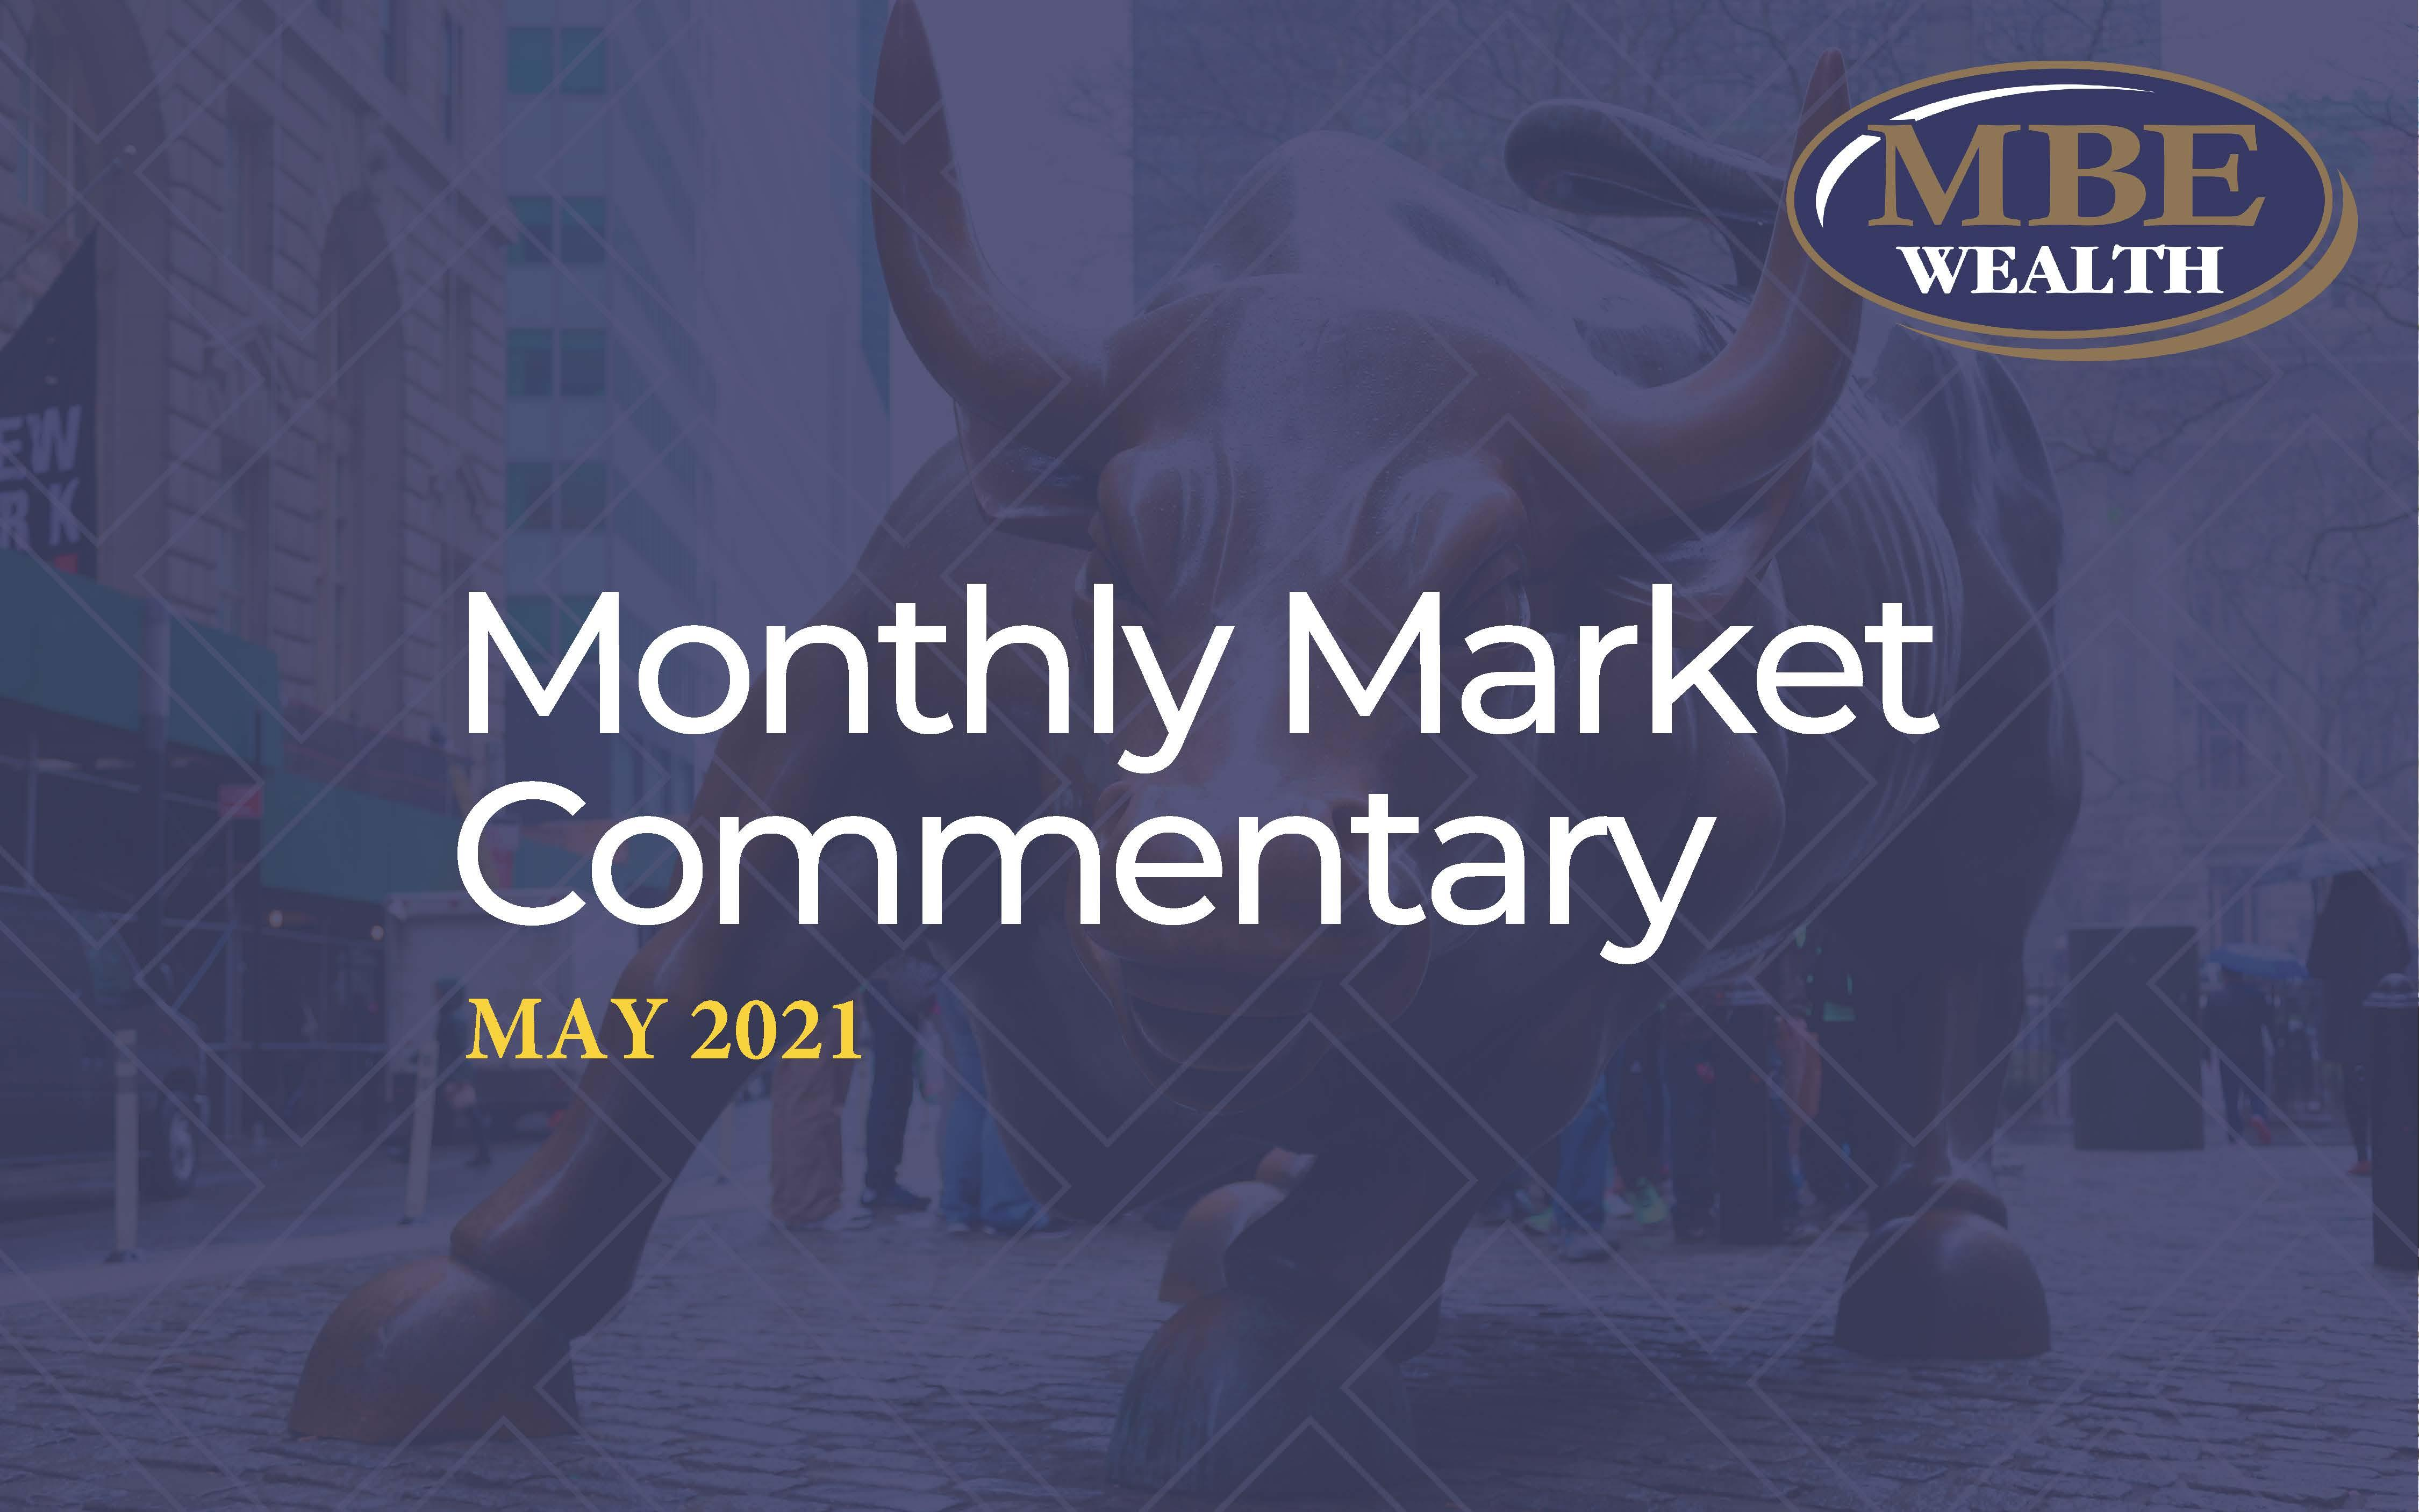 May 2021 MBE Wealth Market Commentary Thumbnail